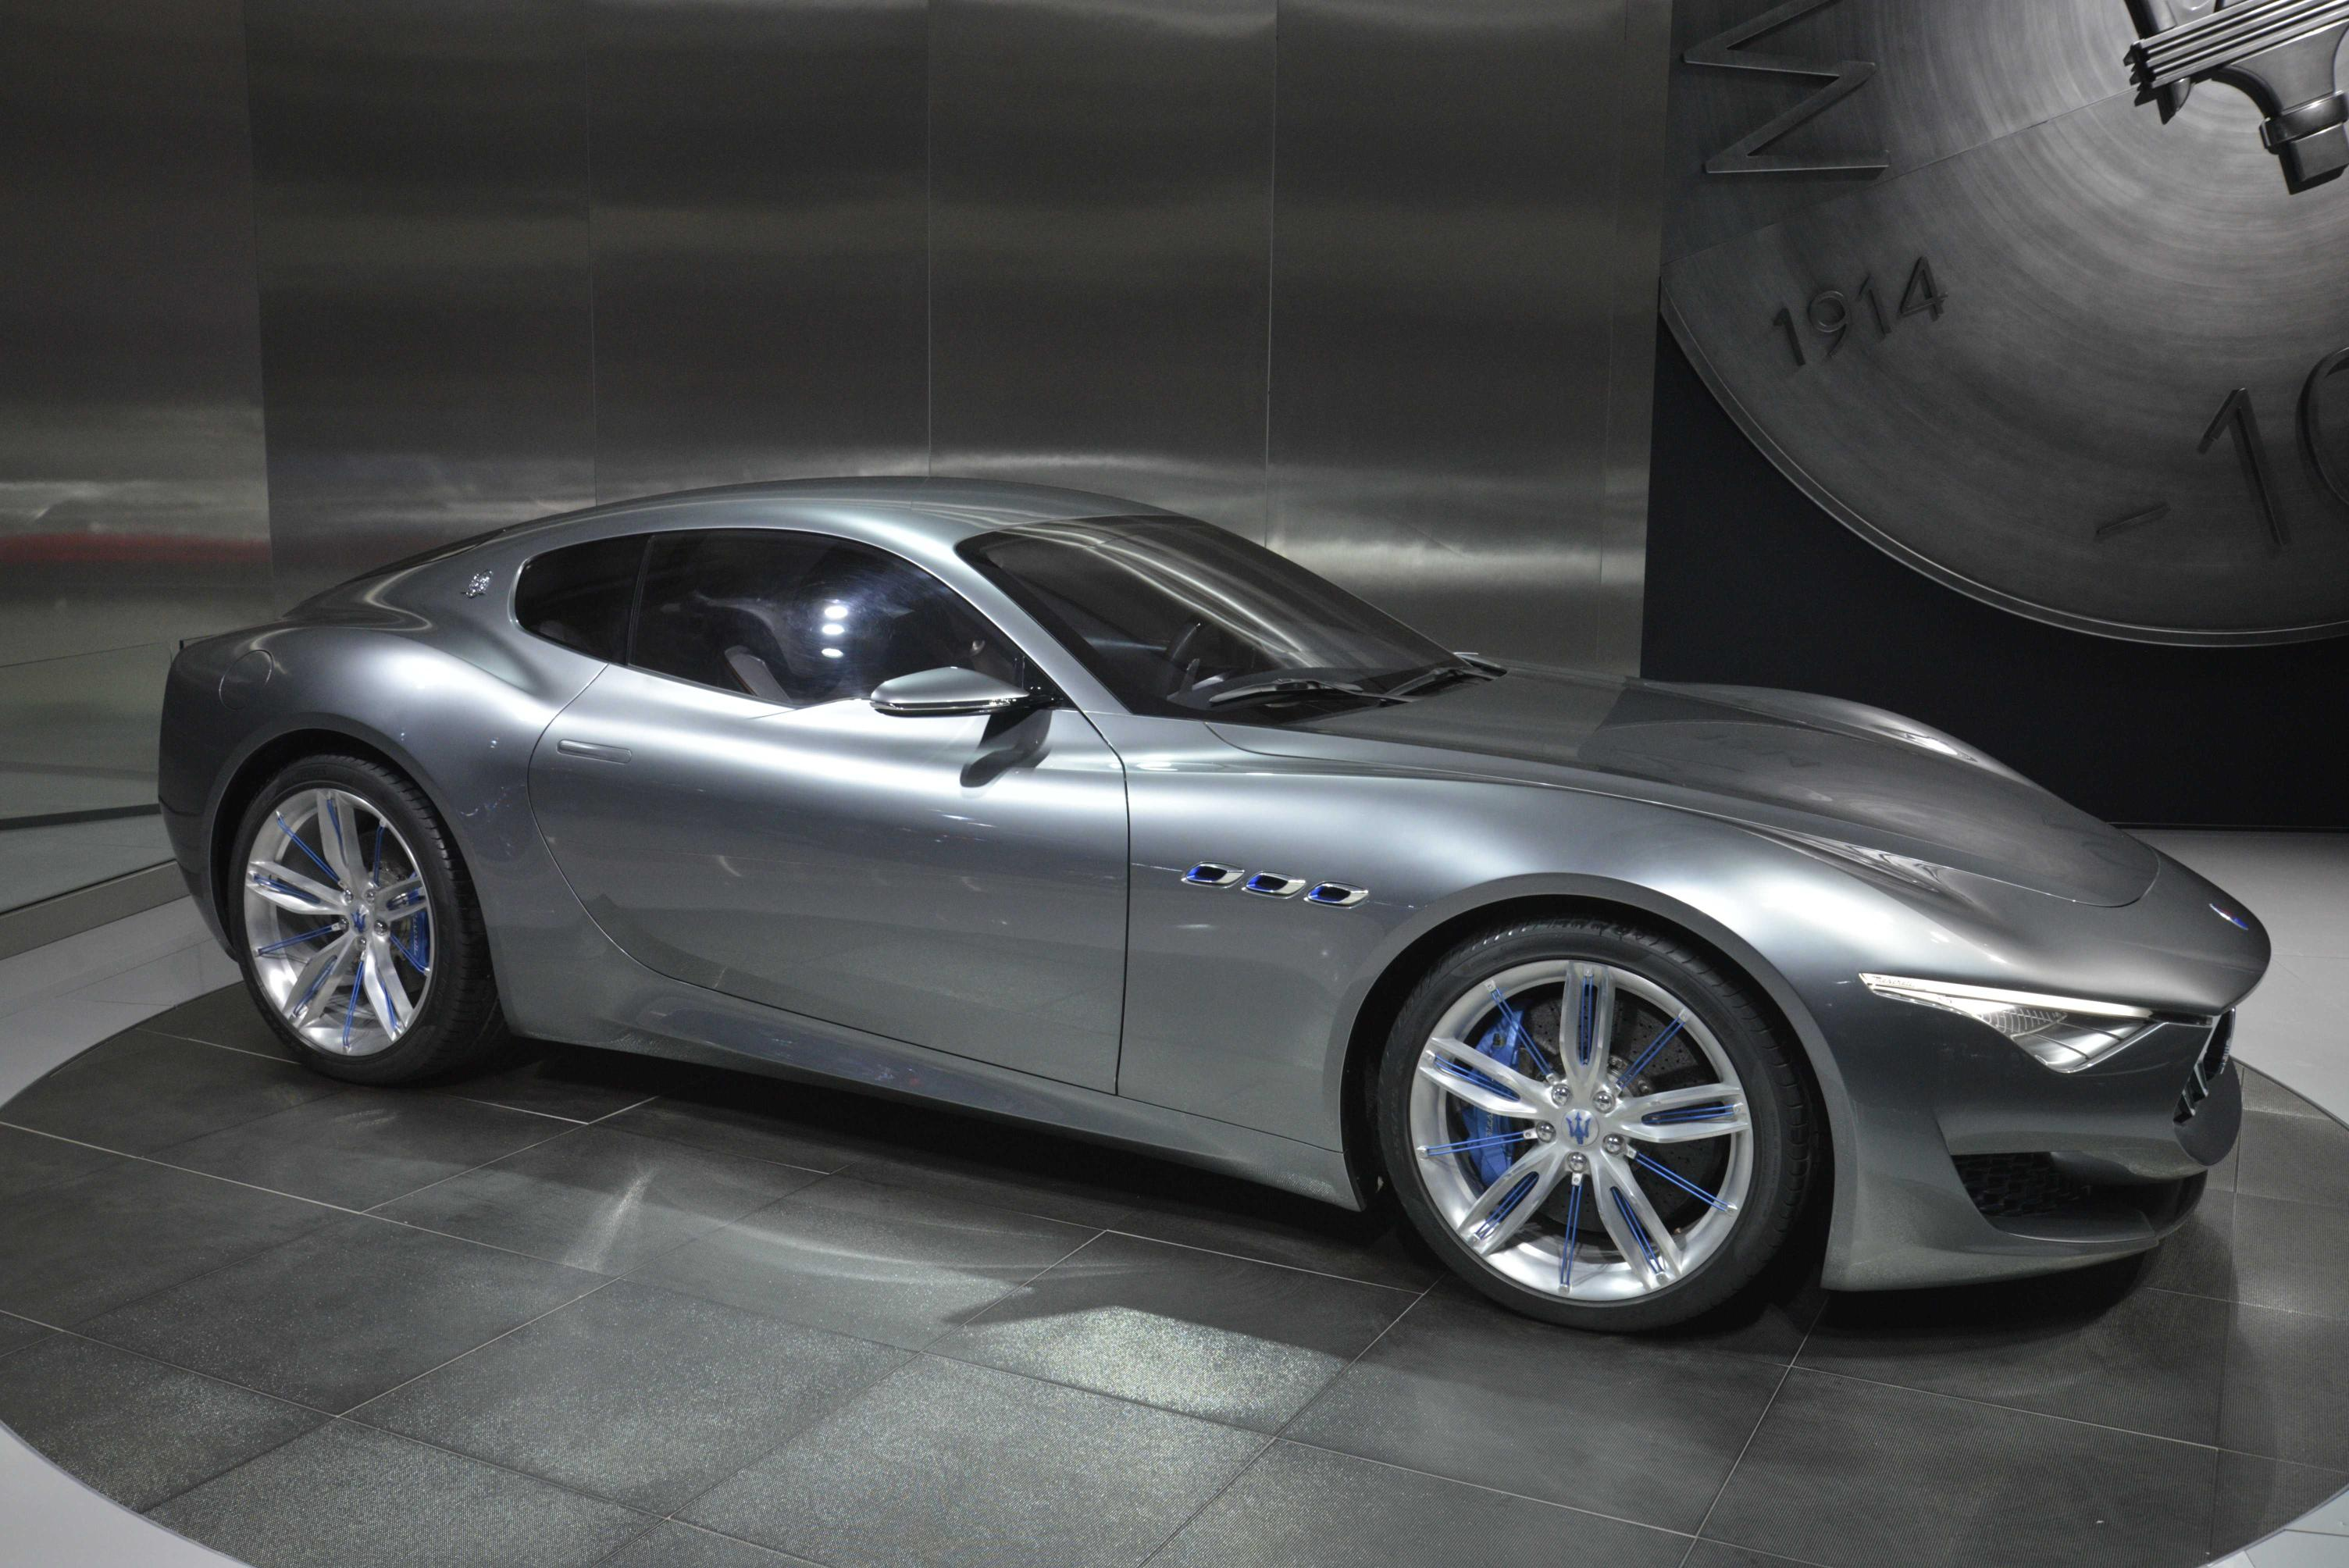 maserati alfieri granturismo coupe replacement models delayed arrives until later even debut autoevolution nicely